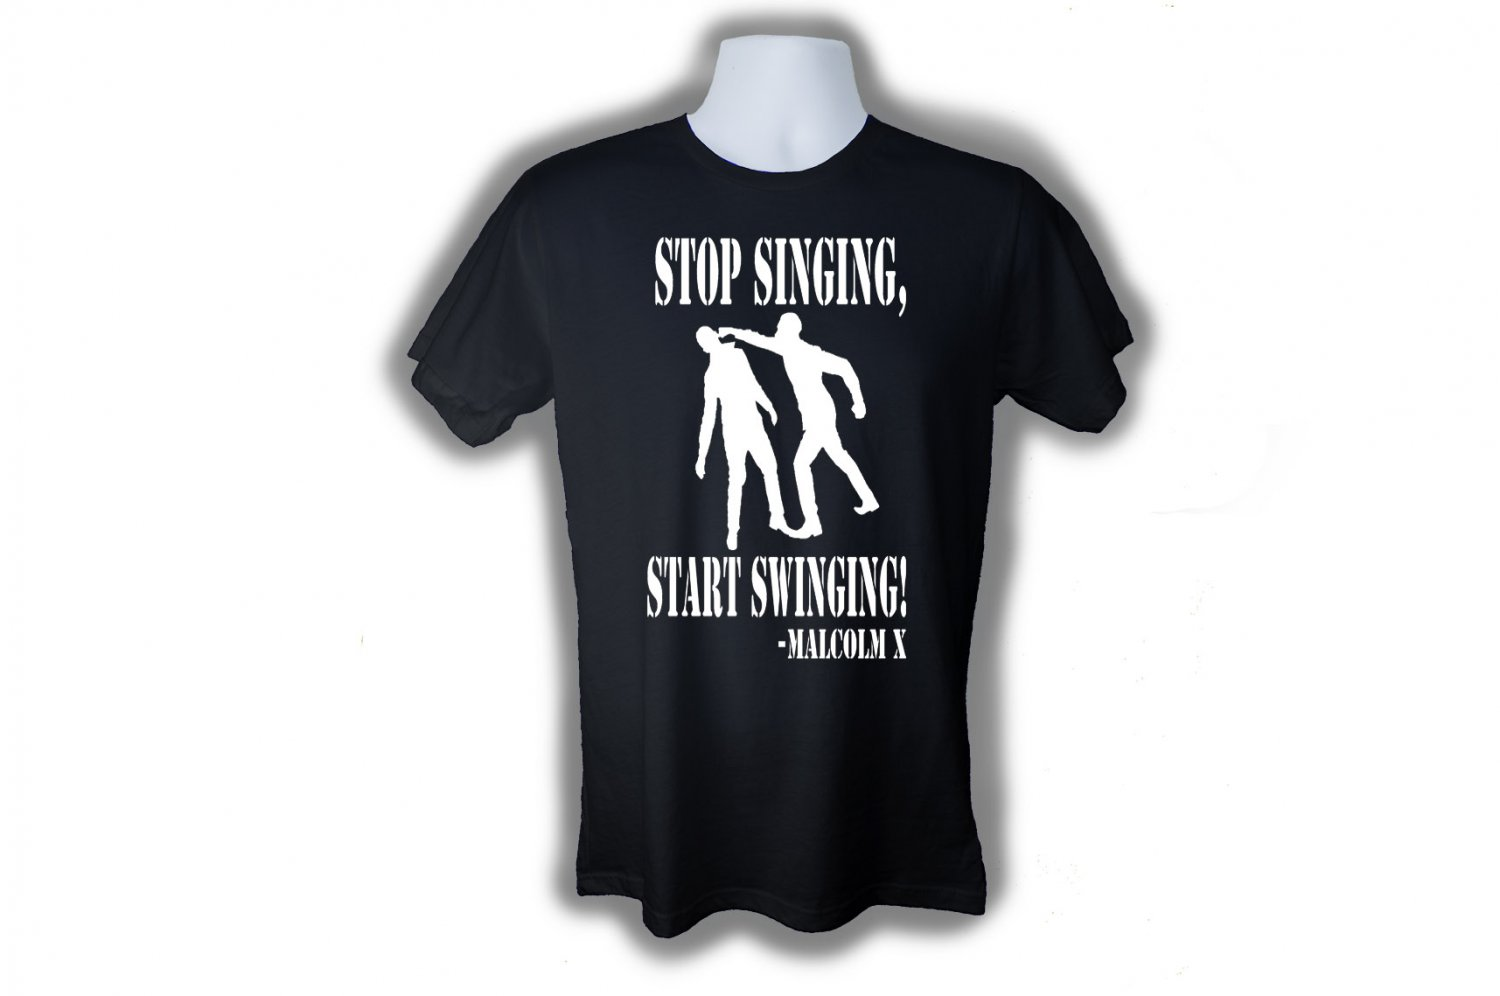 STOP SINGING AND START SWINGING MALCOLM X T-SHIRT (S)